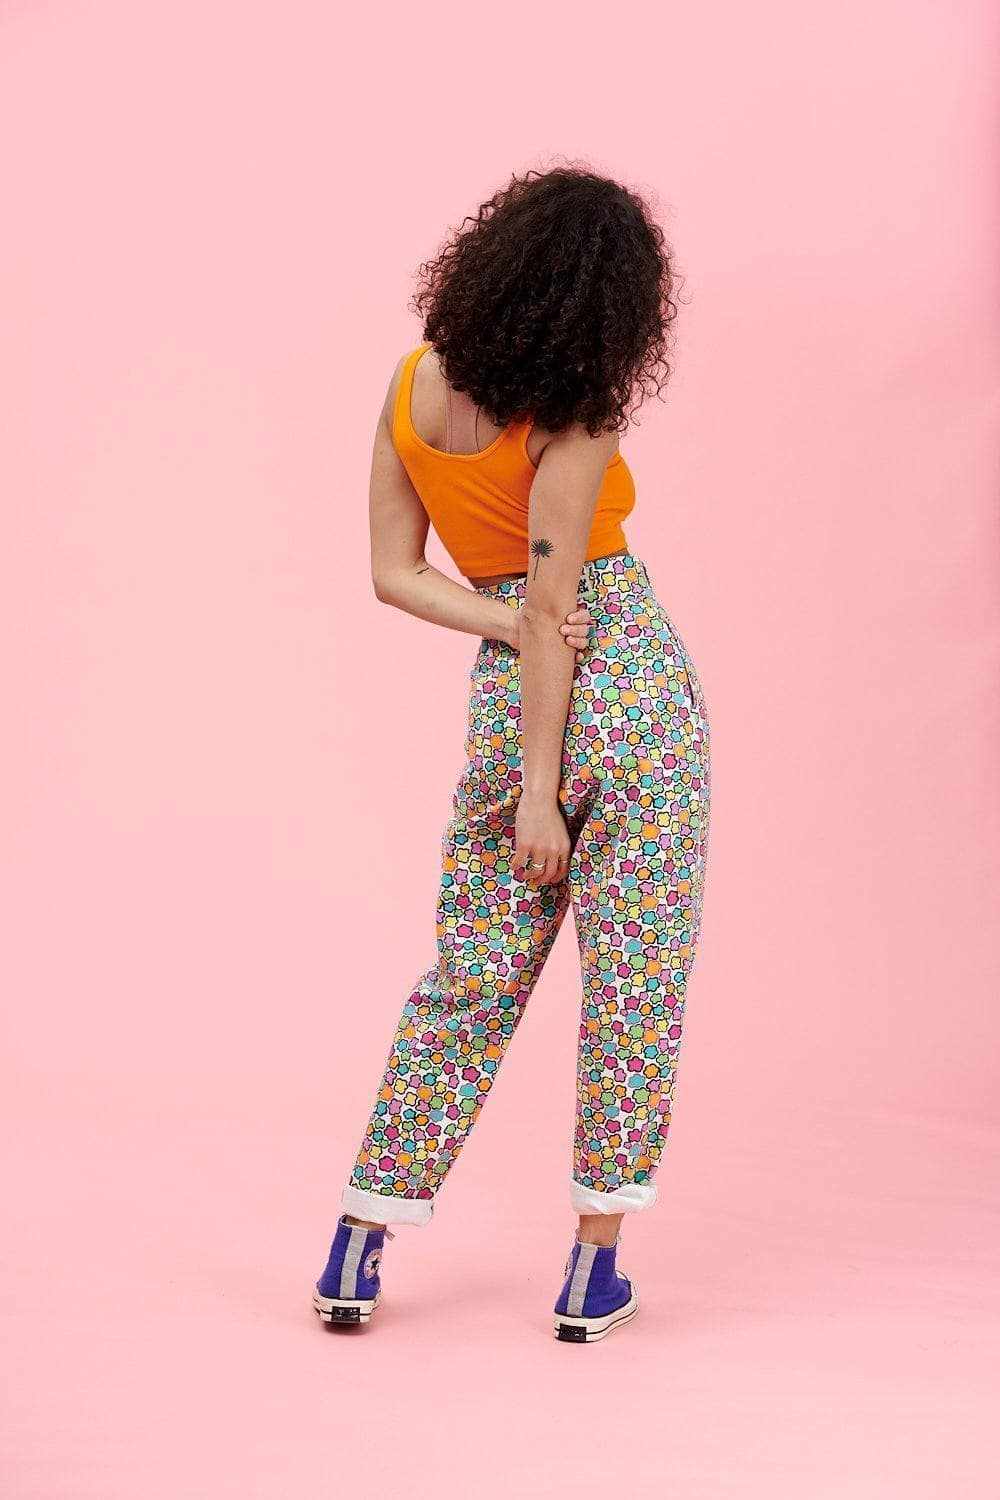 Lucy & Yak jeans 'Addison' High Waisted Organic Cotton Twill Jeans in Flower Print